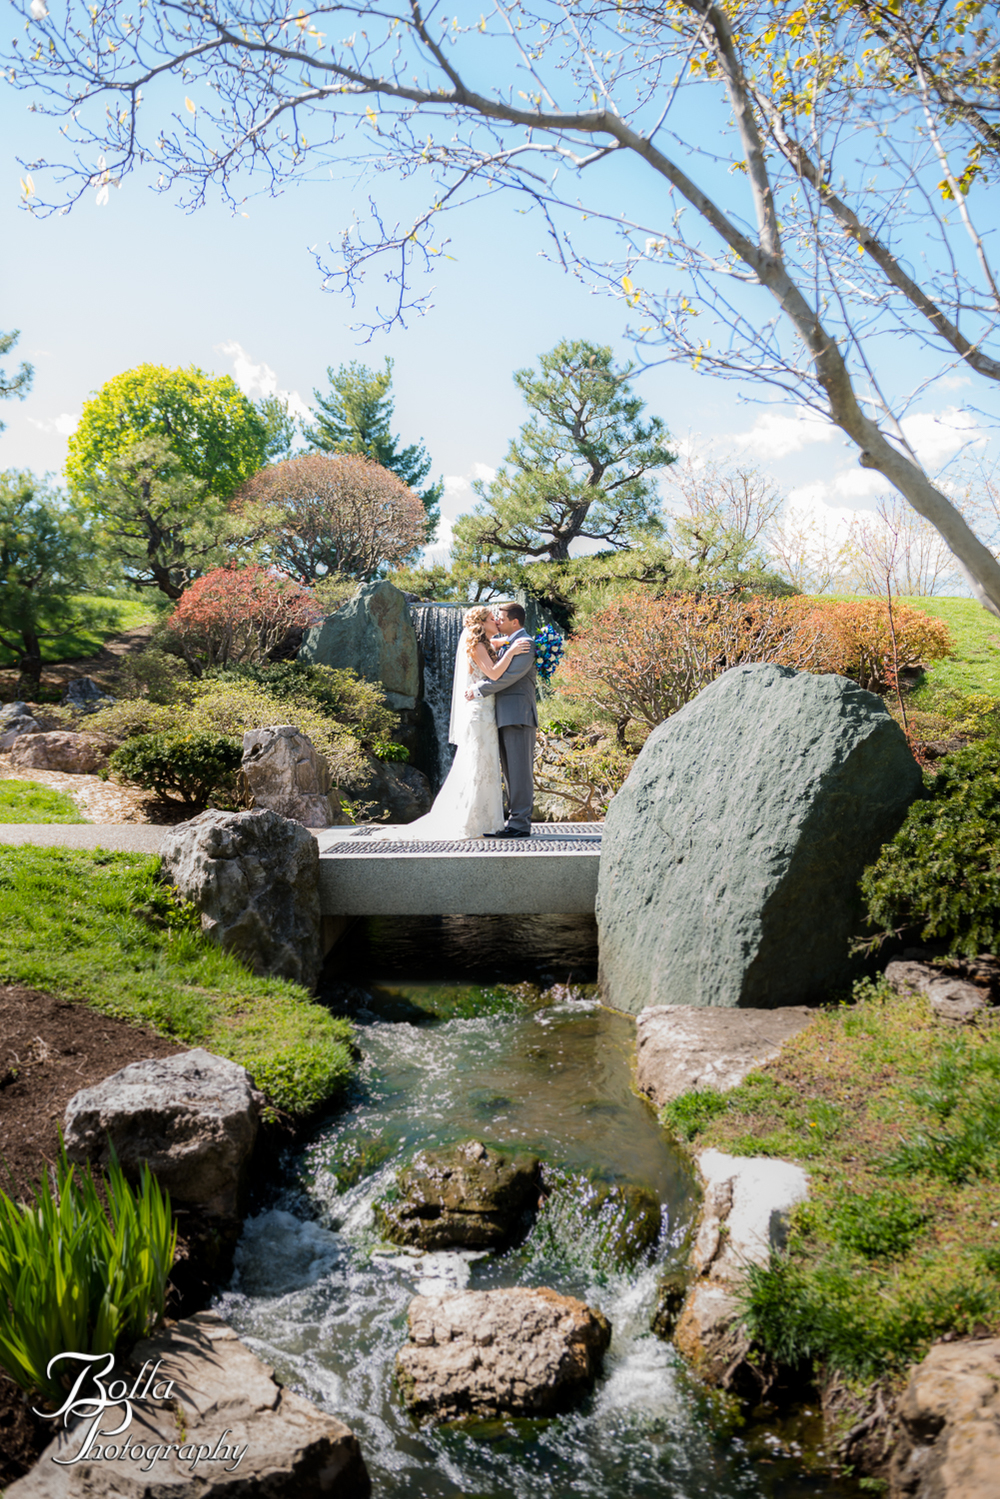 Bolla_Photography_St_Louis_wedding_photographer_Morgando_Blues_hockey_Botanical_Gardens_spring-0229.jpg